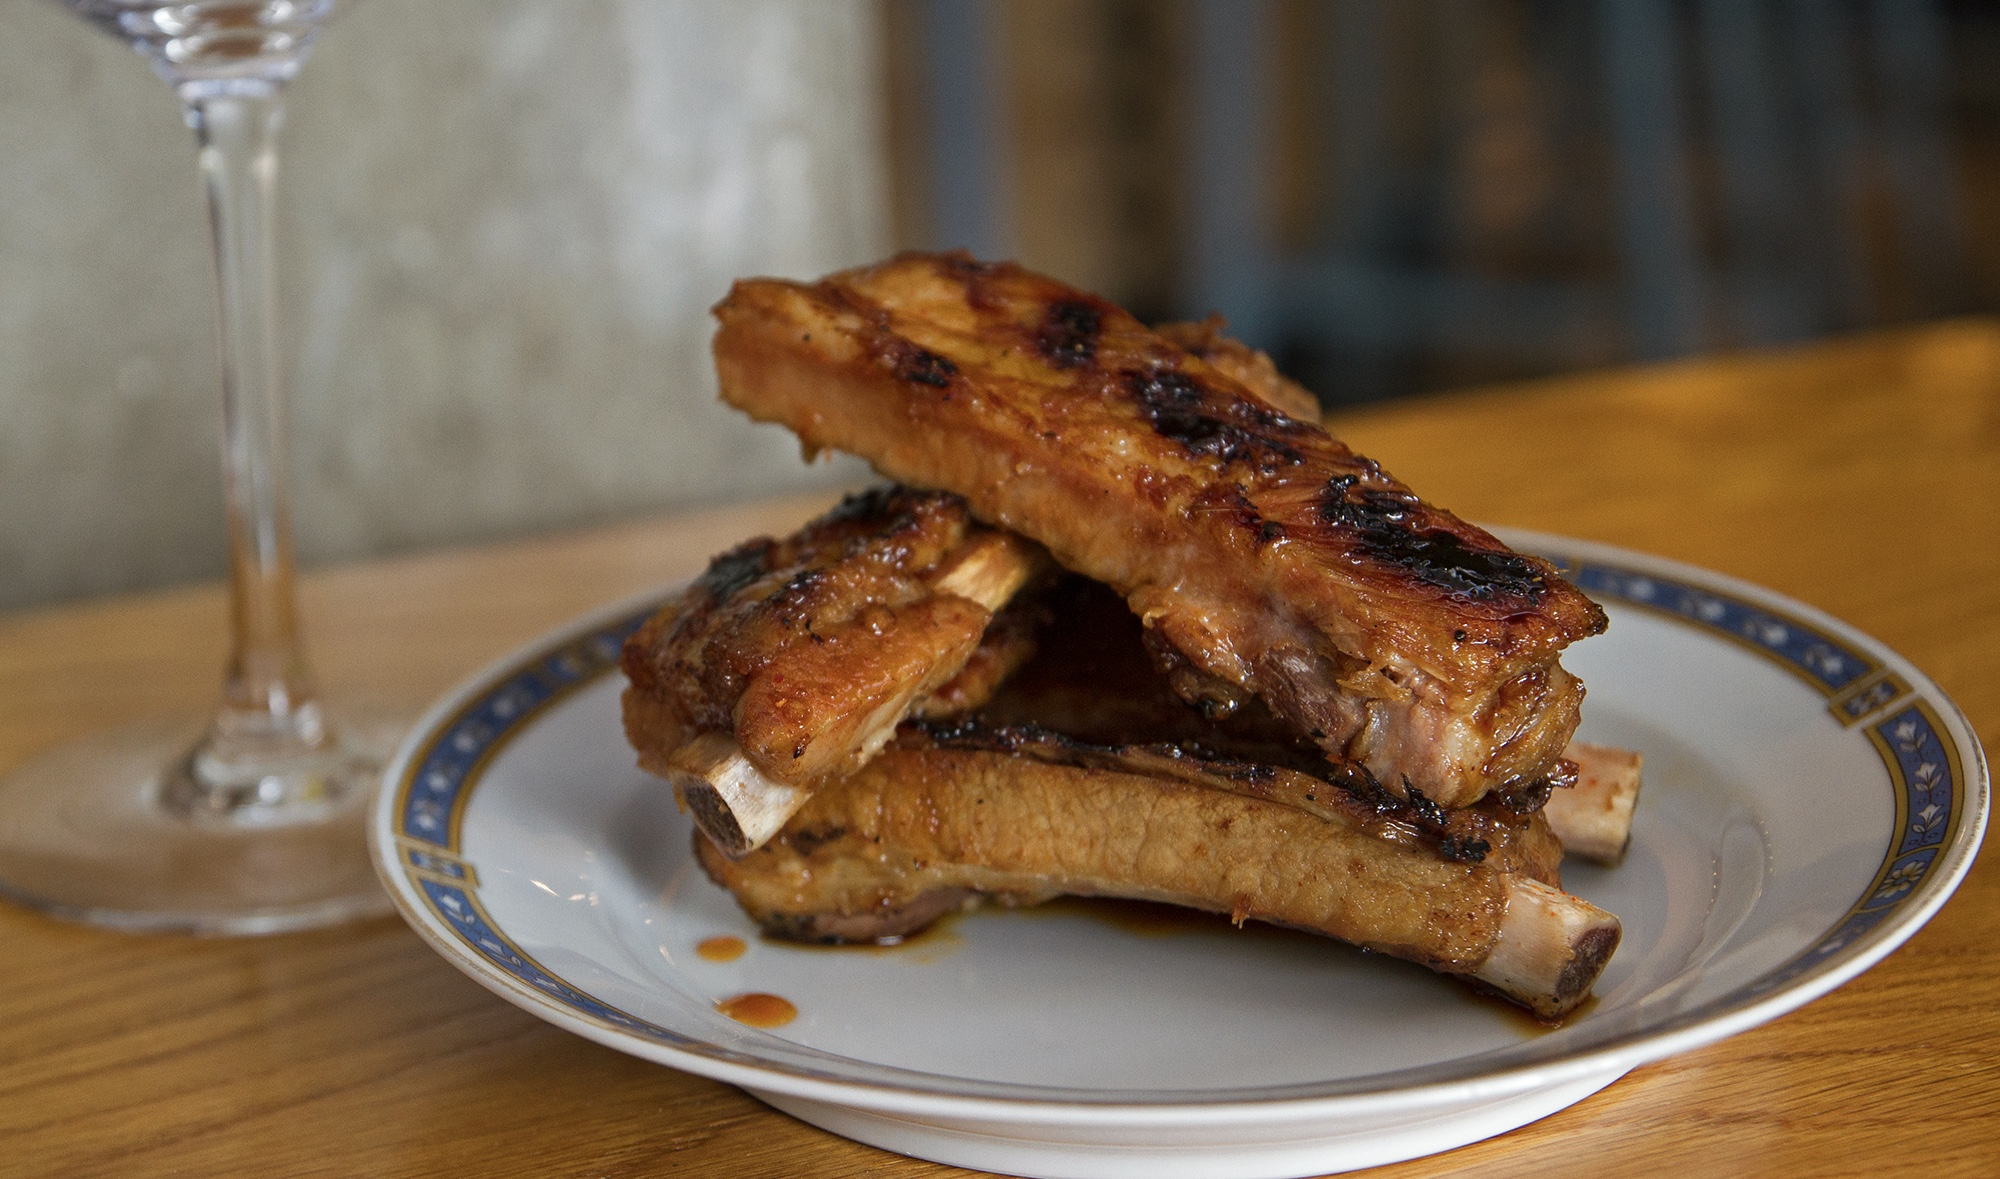 Simbal - Pork Ribs Grilled, Lemongrass, Chili